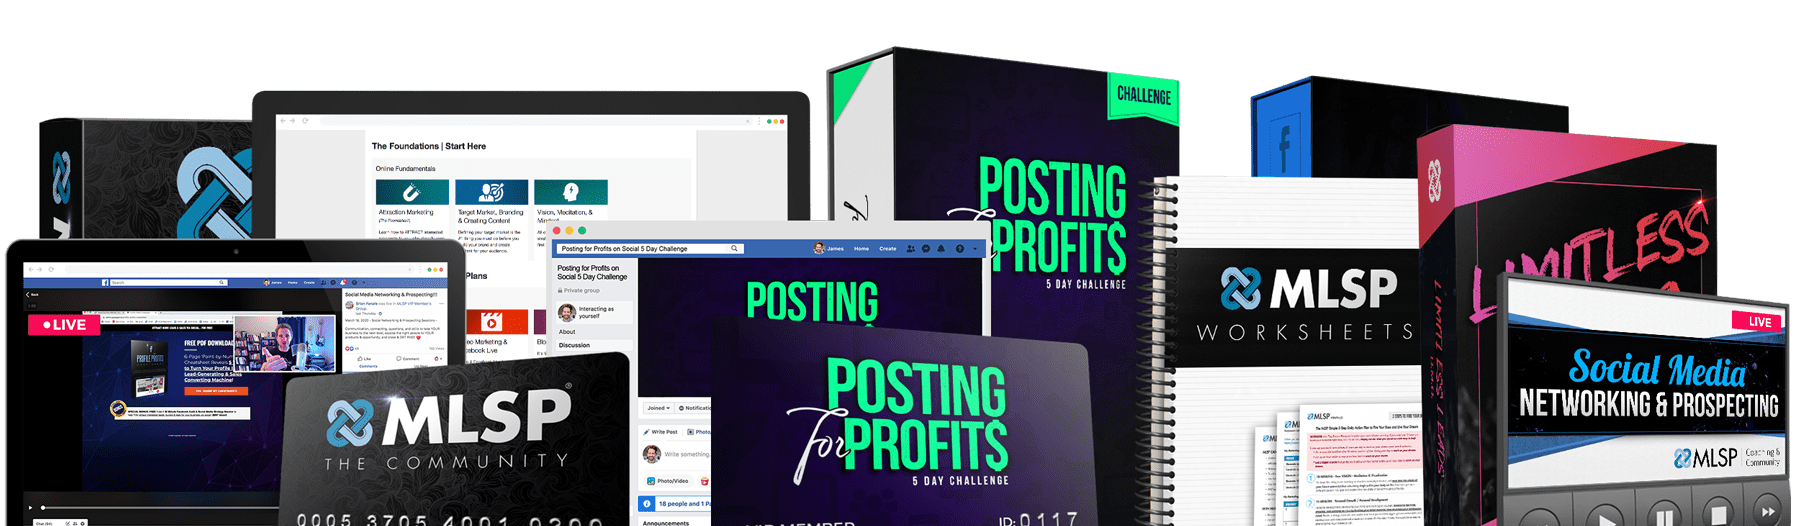 5-Day 'Posting for Profits' Challenge